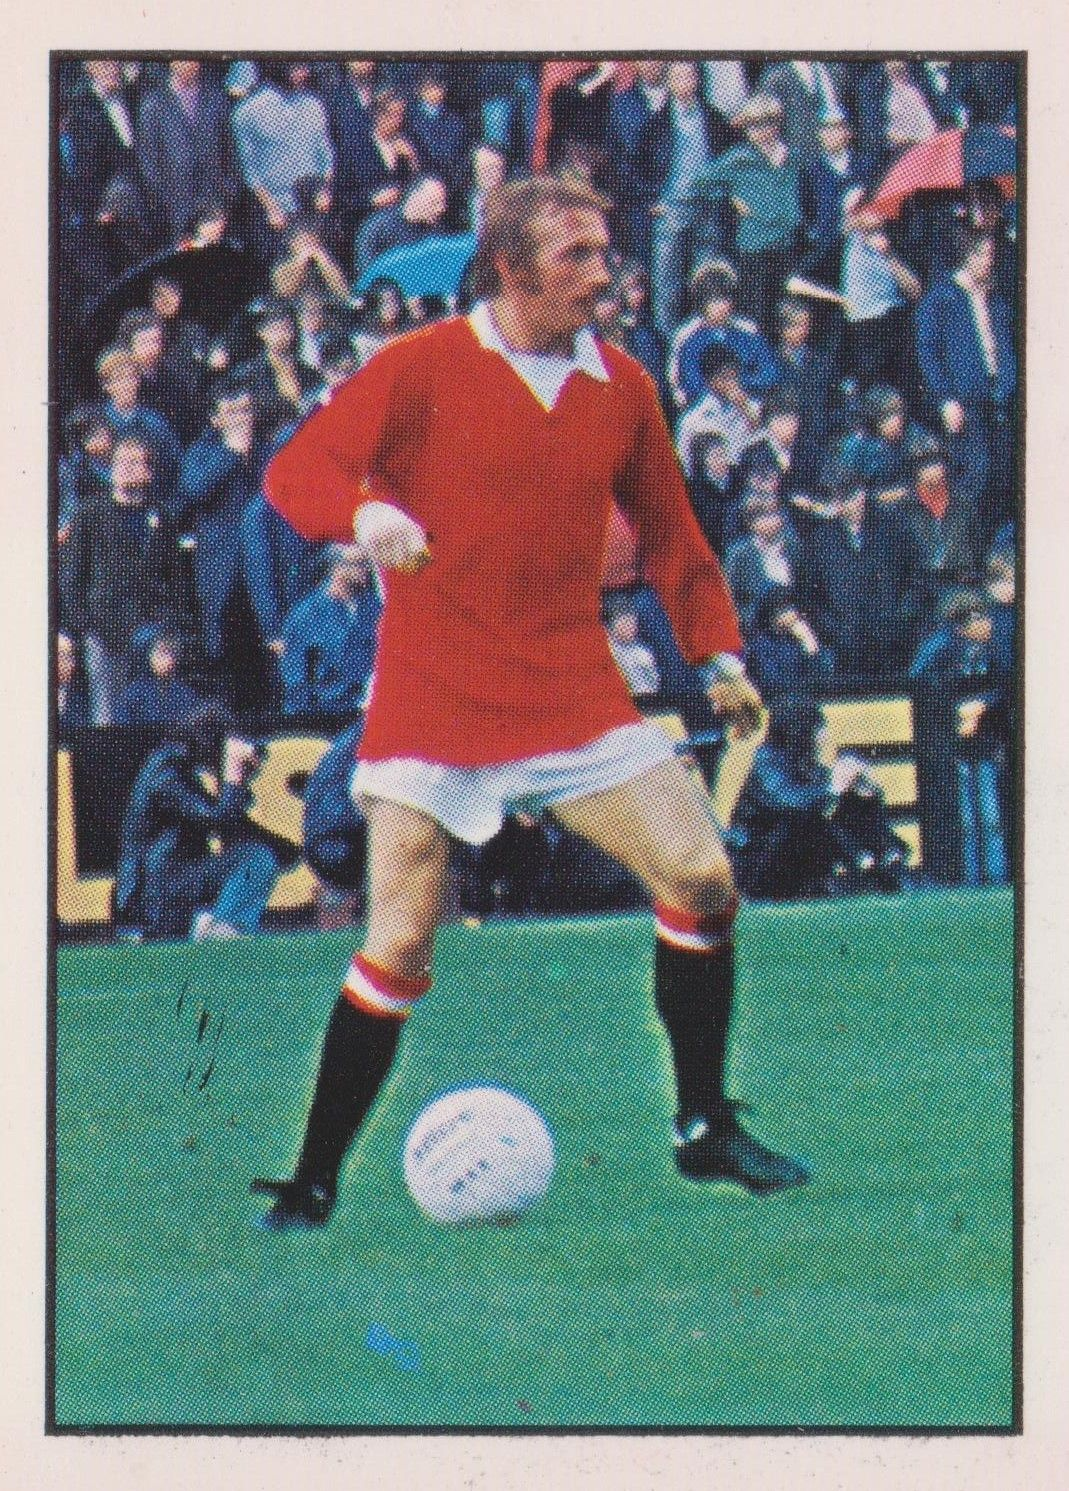 Denis law manchester united top sellers 1973 manchester